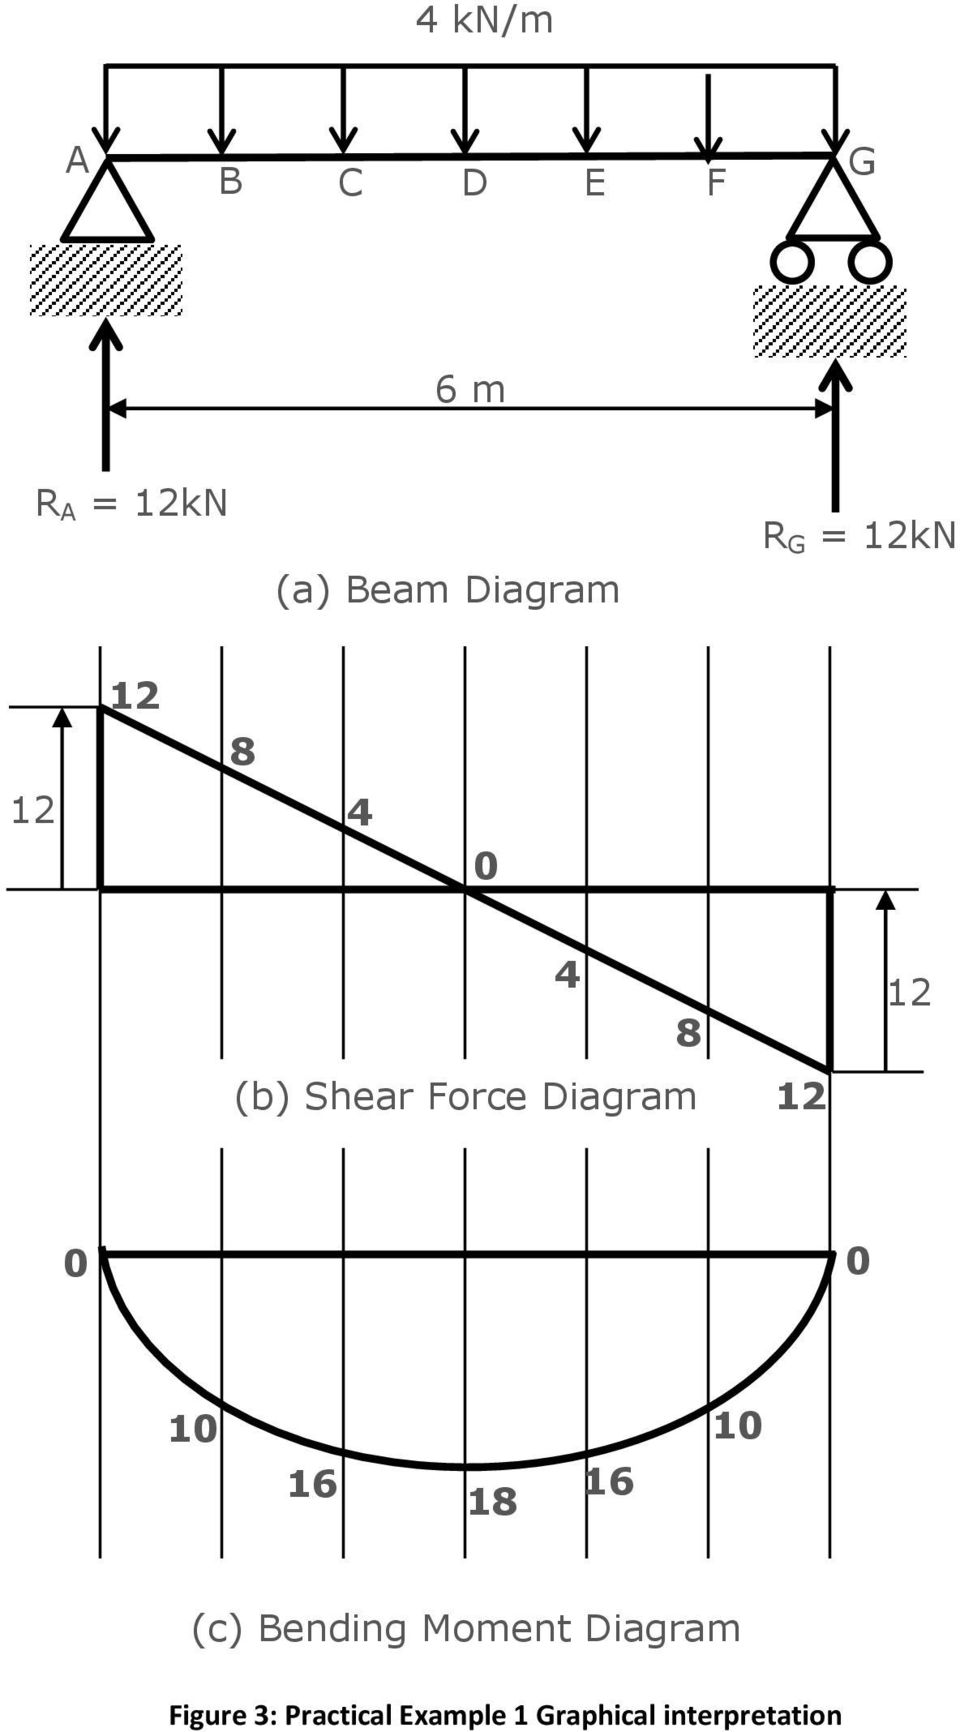 Chapter 8 Shear Force And Bending Moment Diagrams For Uniformly Draw Deflected Shape Diagram All 12 1 16 18 C Ending 5 82 The Of